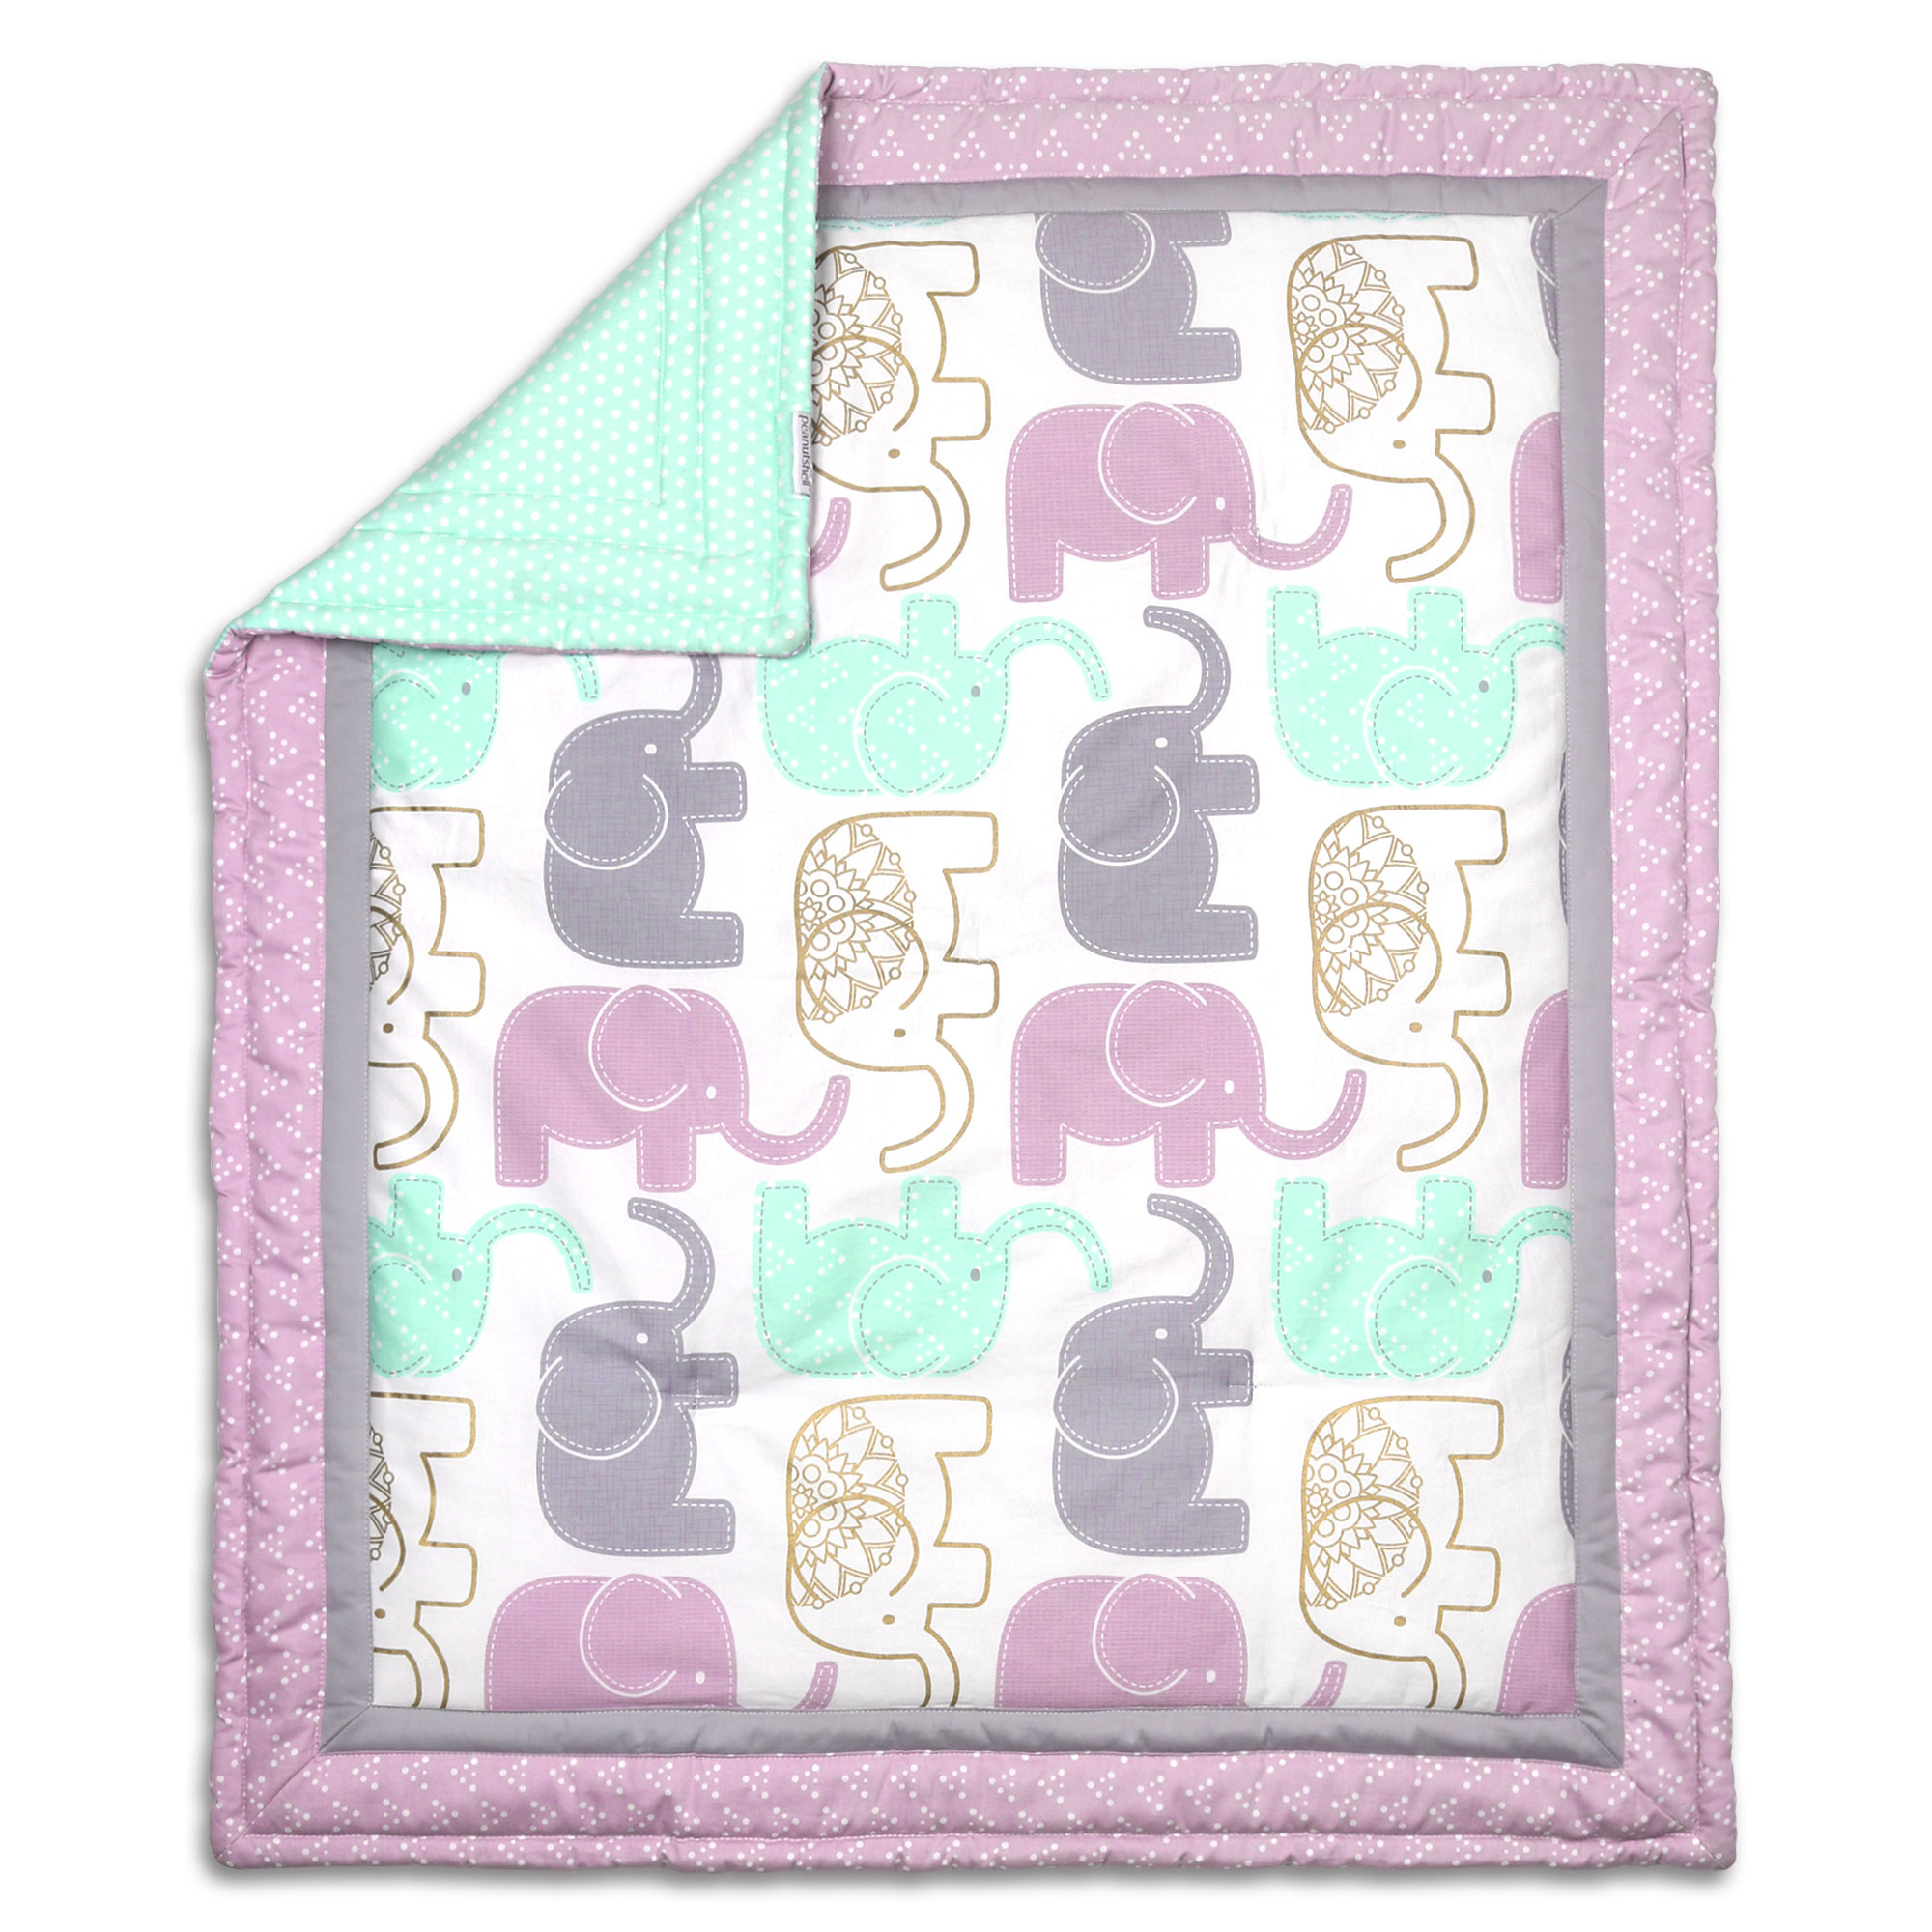 The Peanut Shell Baby Girl Crib Quilt Little Peanut Lilac Purple and Gold Elephants 100% Cotton Sateen... by The Peanut Shell